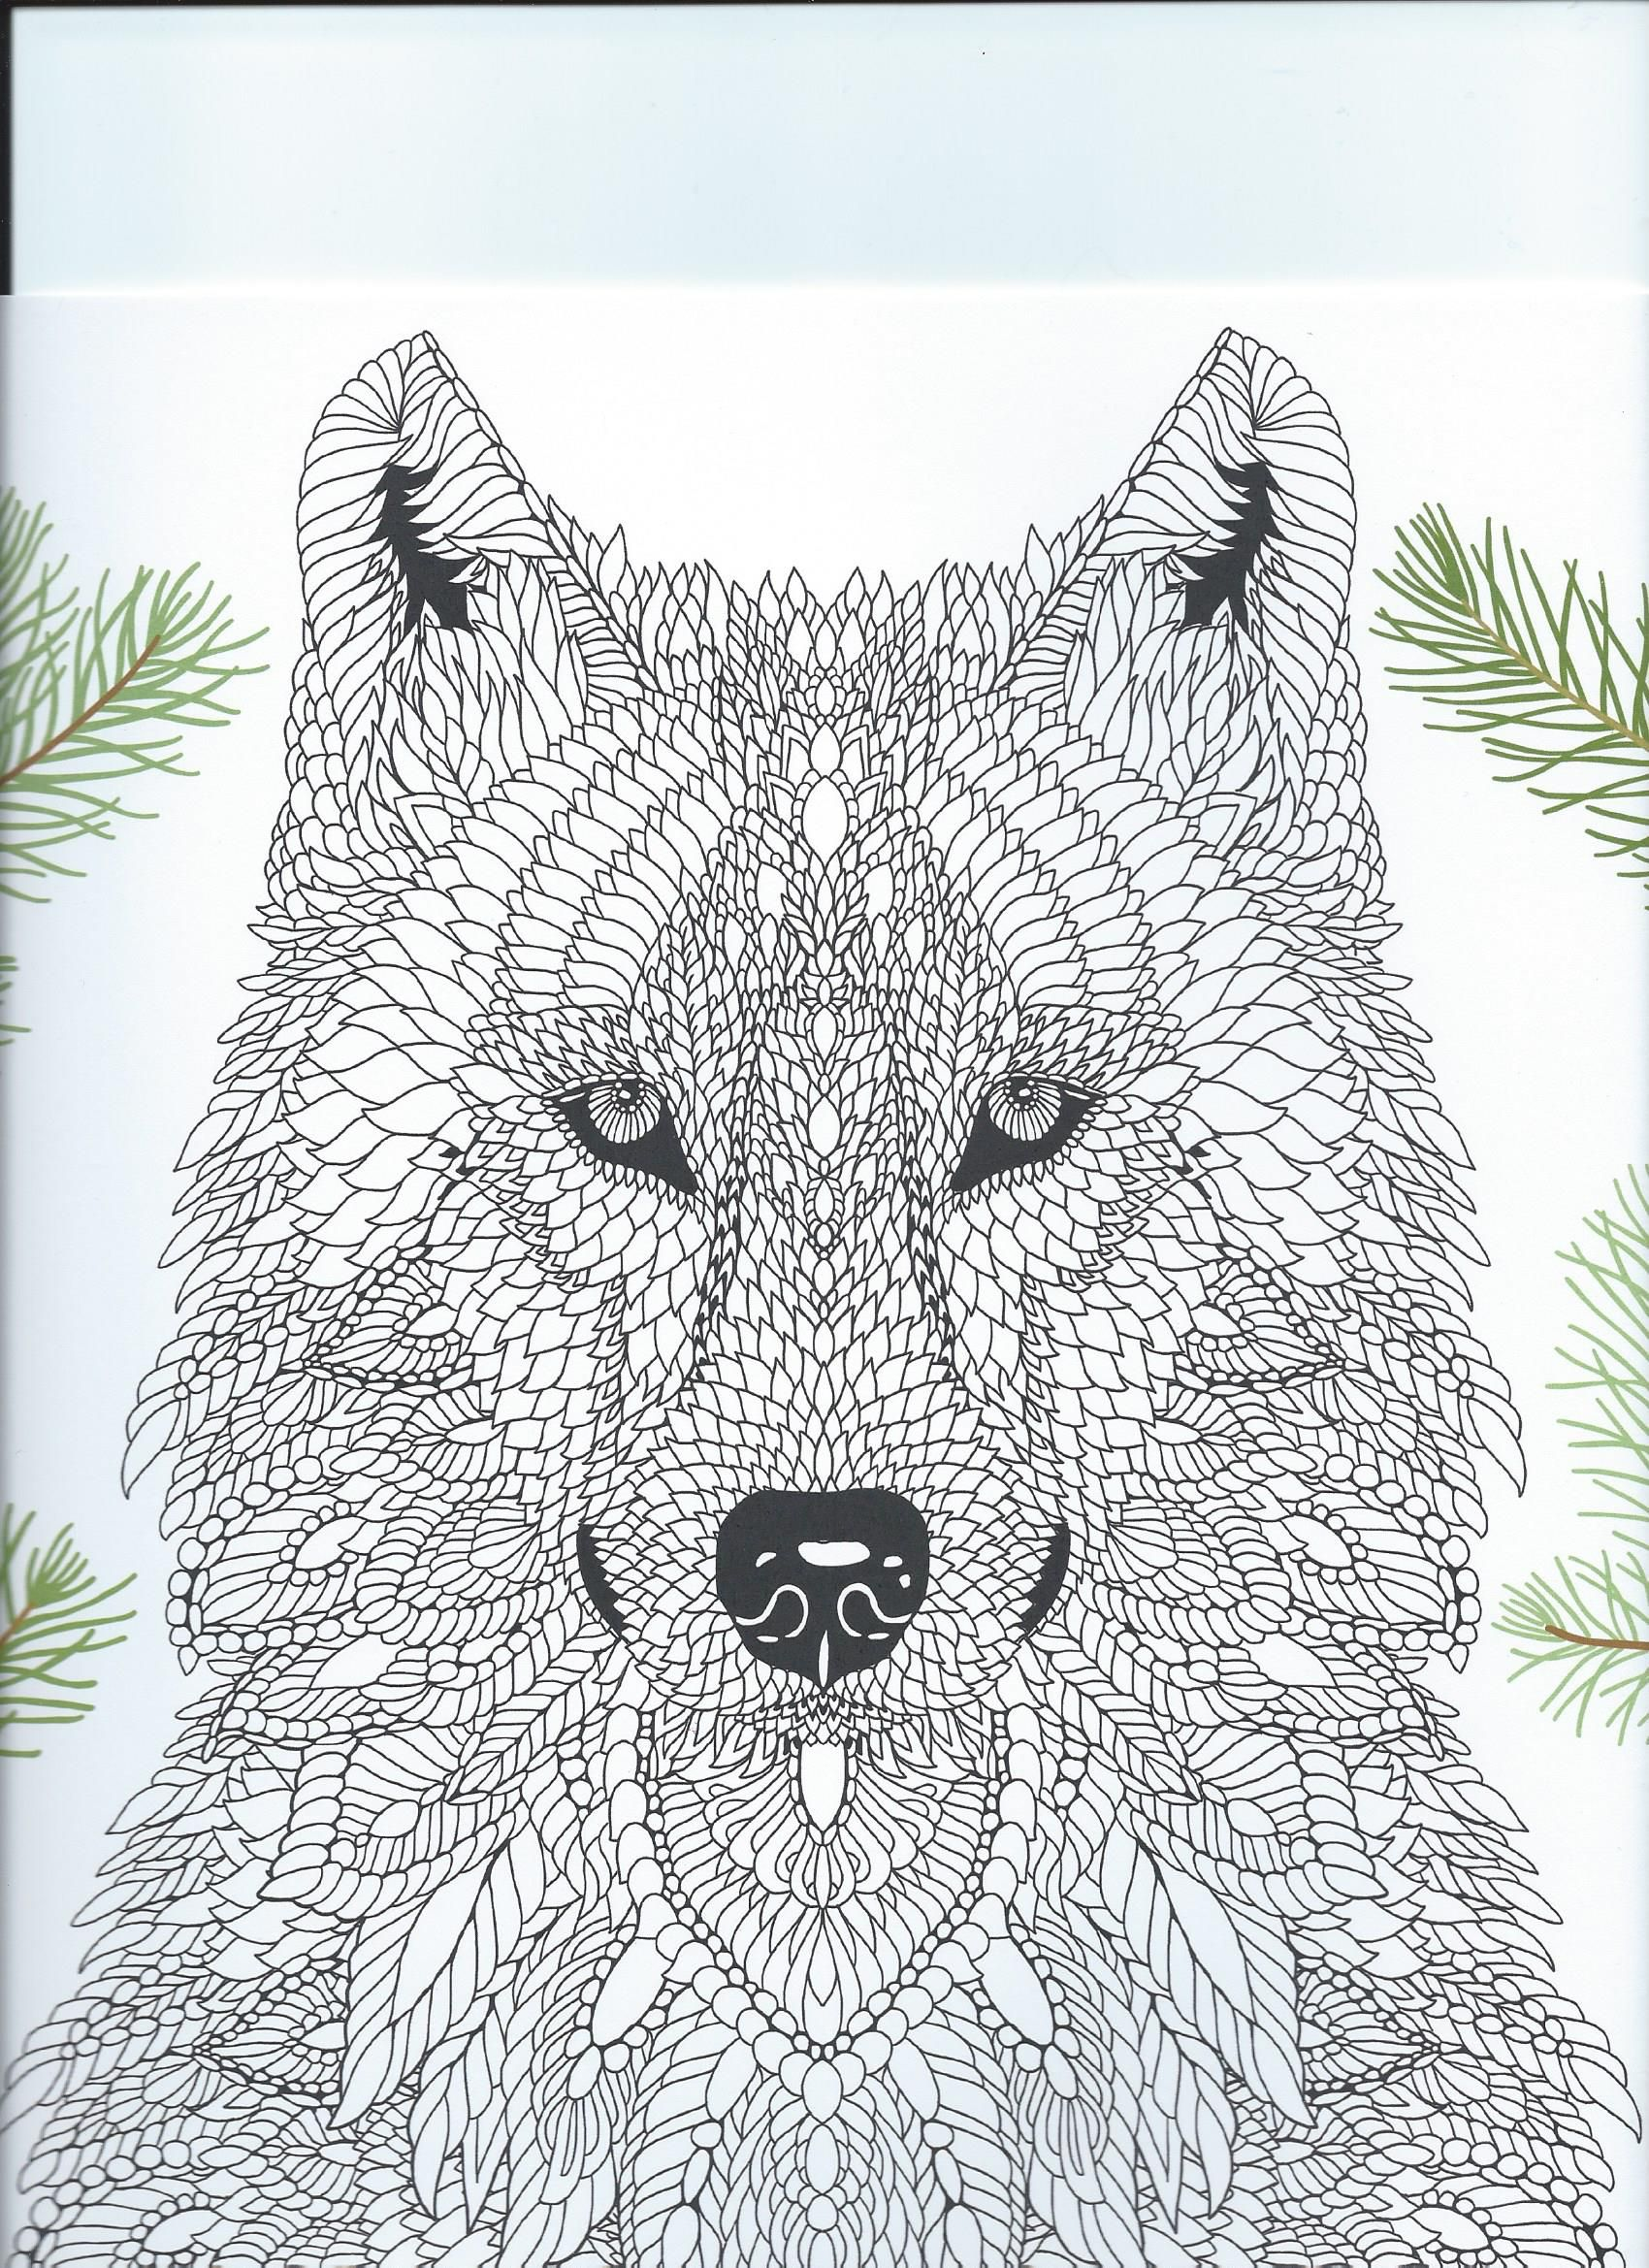 From The Coloring Book The Menagerie Animal Portraits To Color Dog Coloring Book Animal Coloring Books Animal Coloring Pages